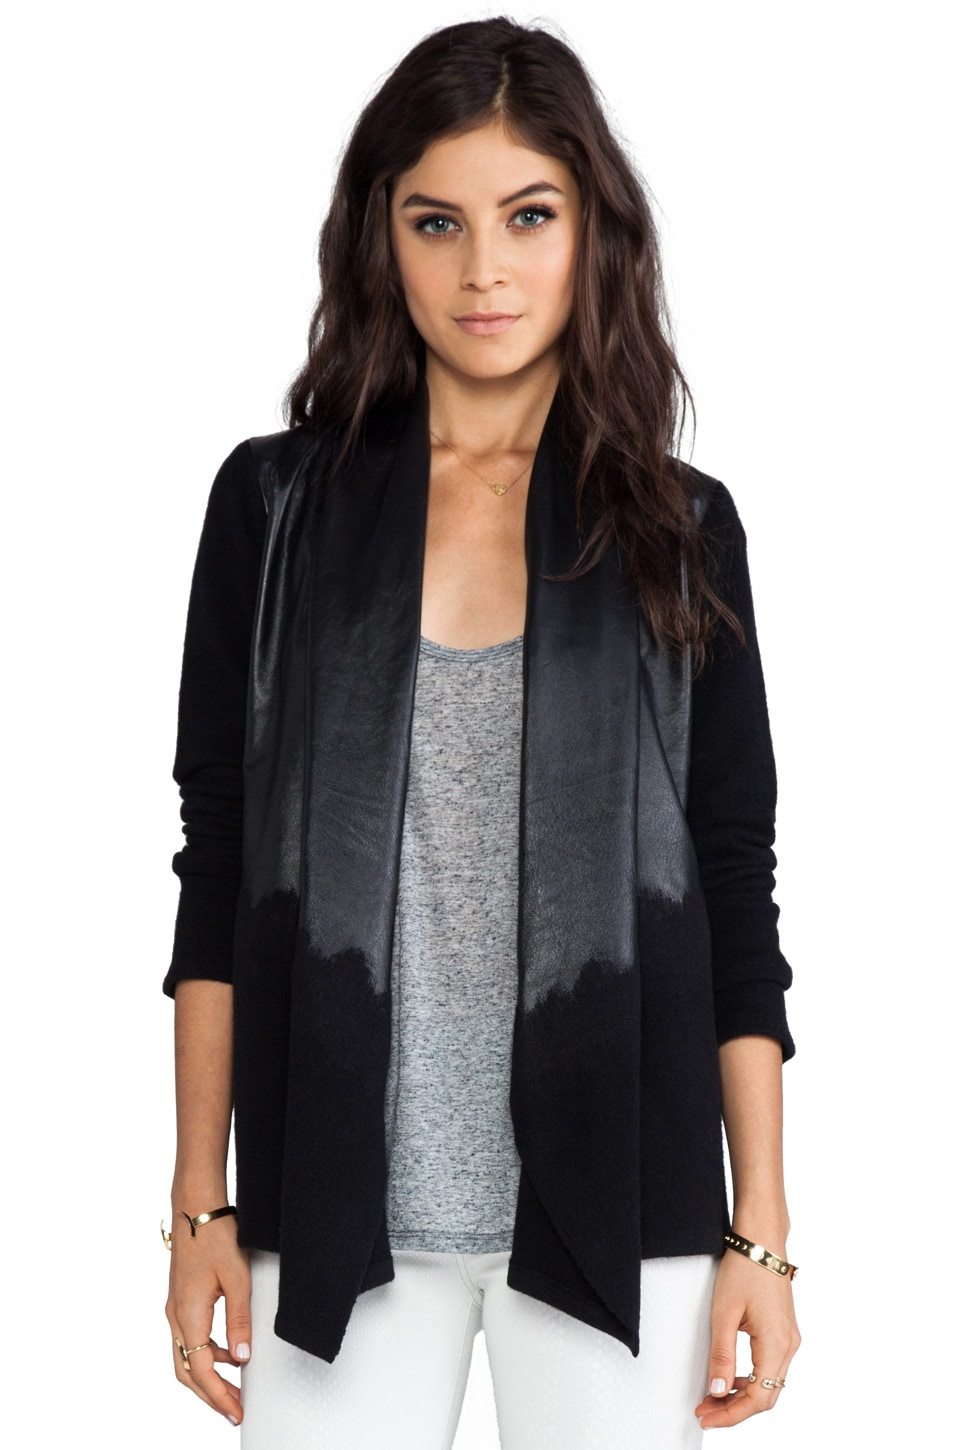 Alice + Olivia Aaralyn Leather Drape Cardigan in Black/Lambskin